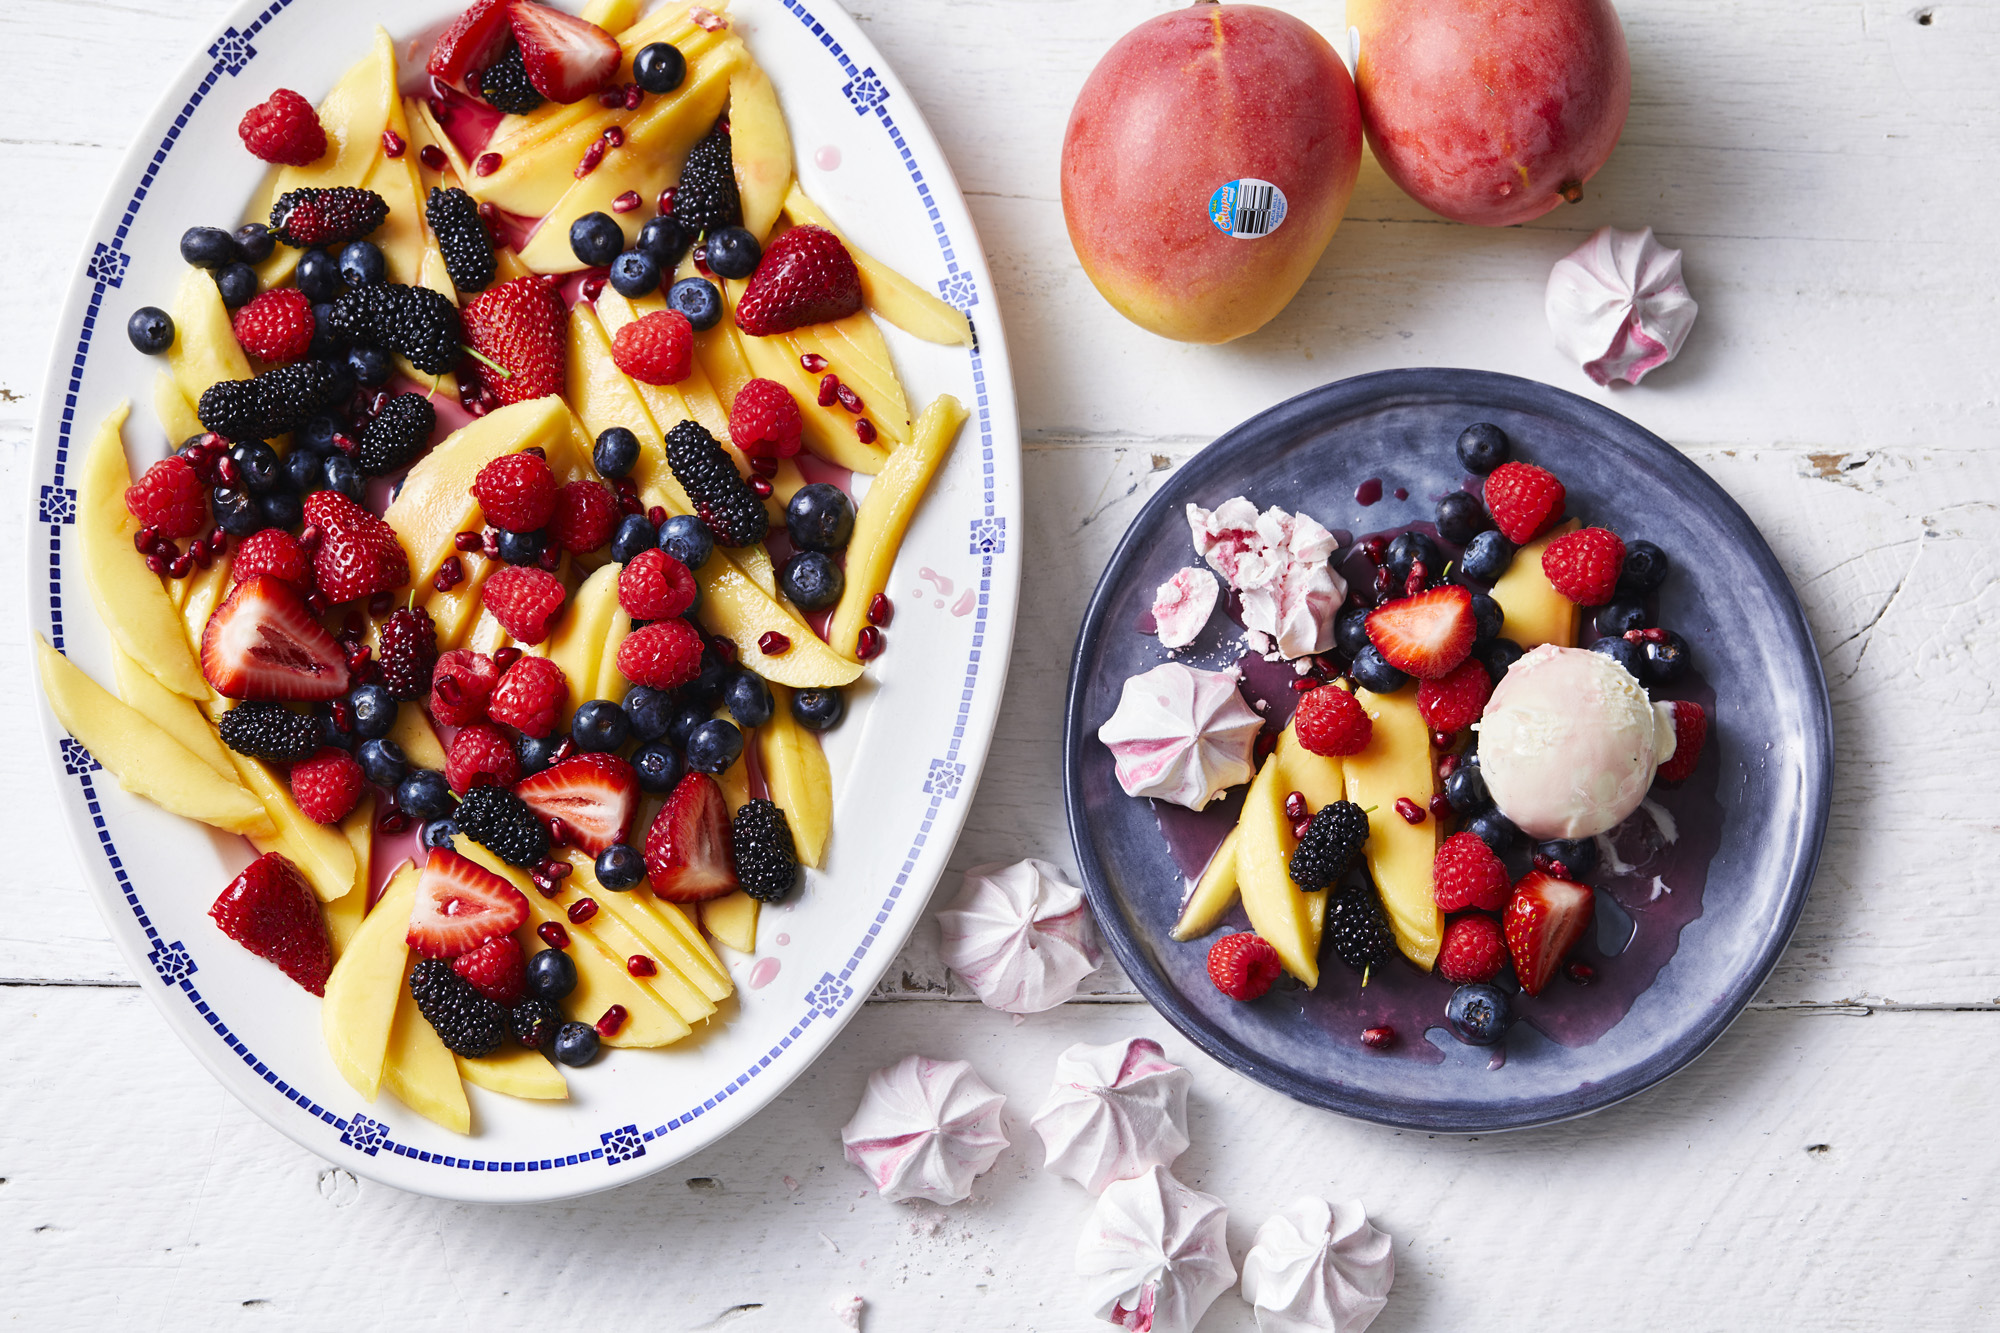 Calypso Mango & Mixed Berries Fruit Salad with Rose Syrup